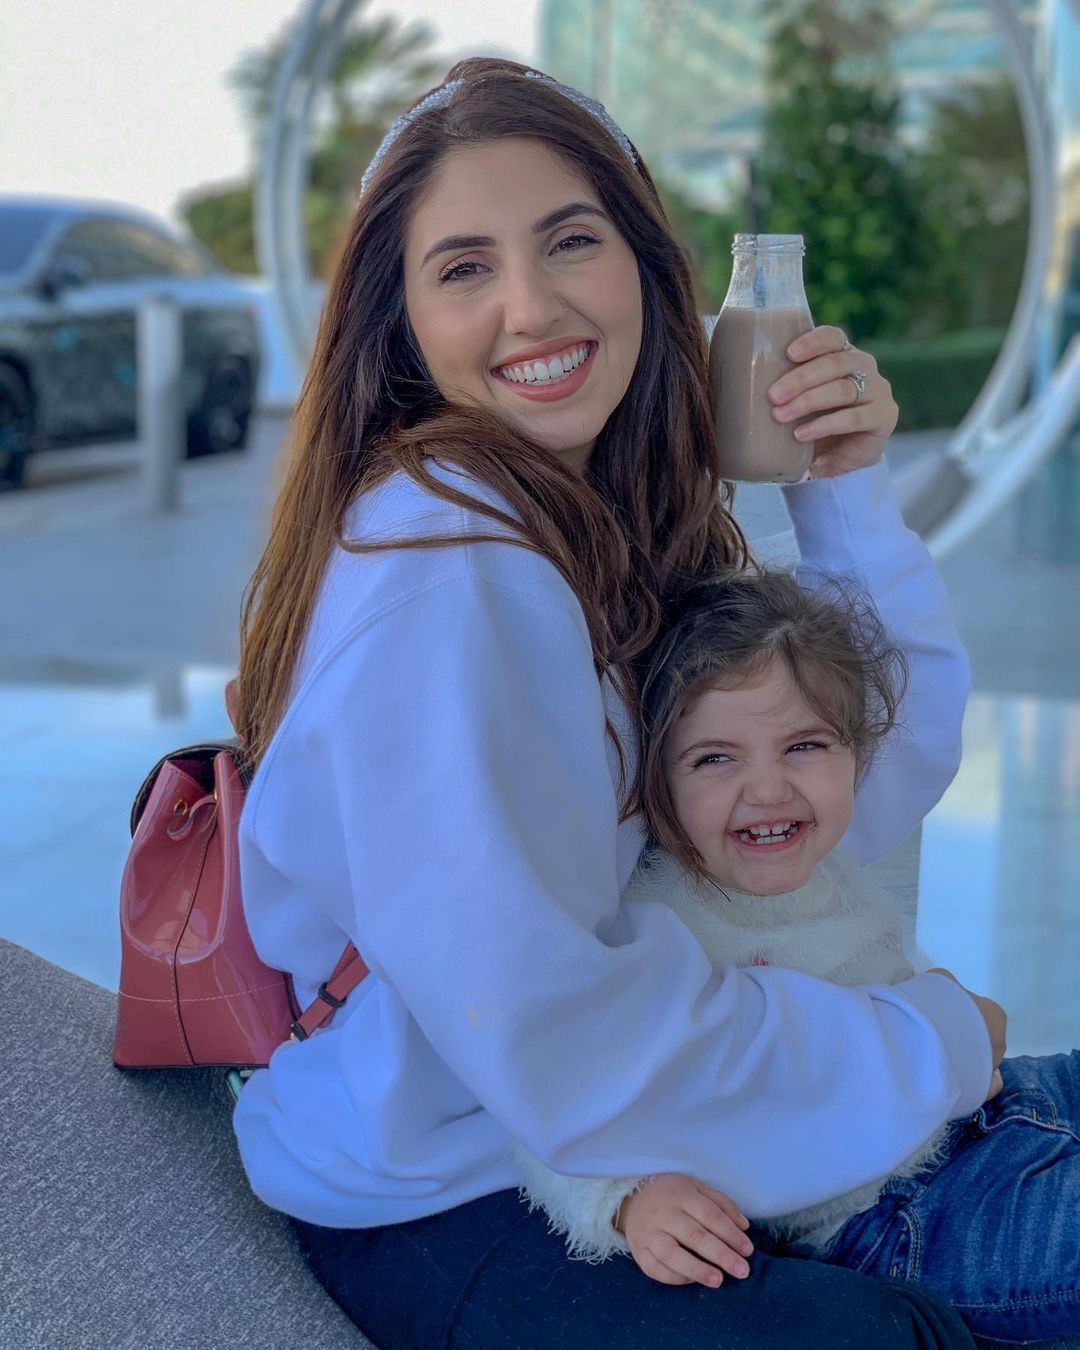 Asala Maleh اصالة المالح On Instagram Family Staycation Mode On Mila S Birthday Surprise At Yasisland S Kpop Fashion Outfits Famous Girls Kpop Fashion